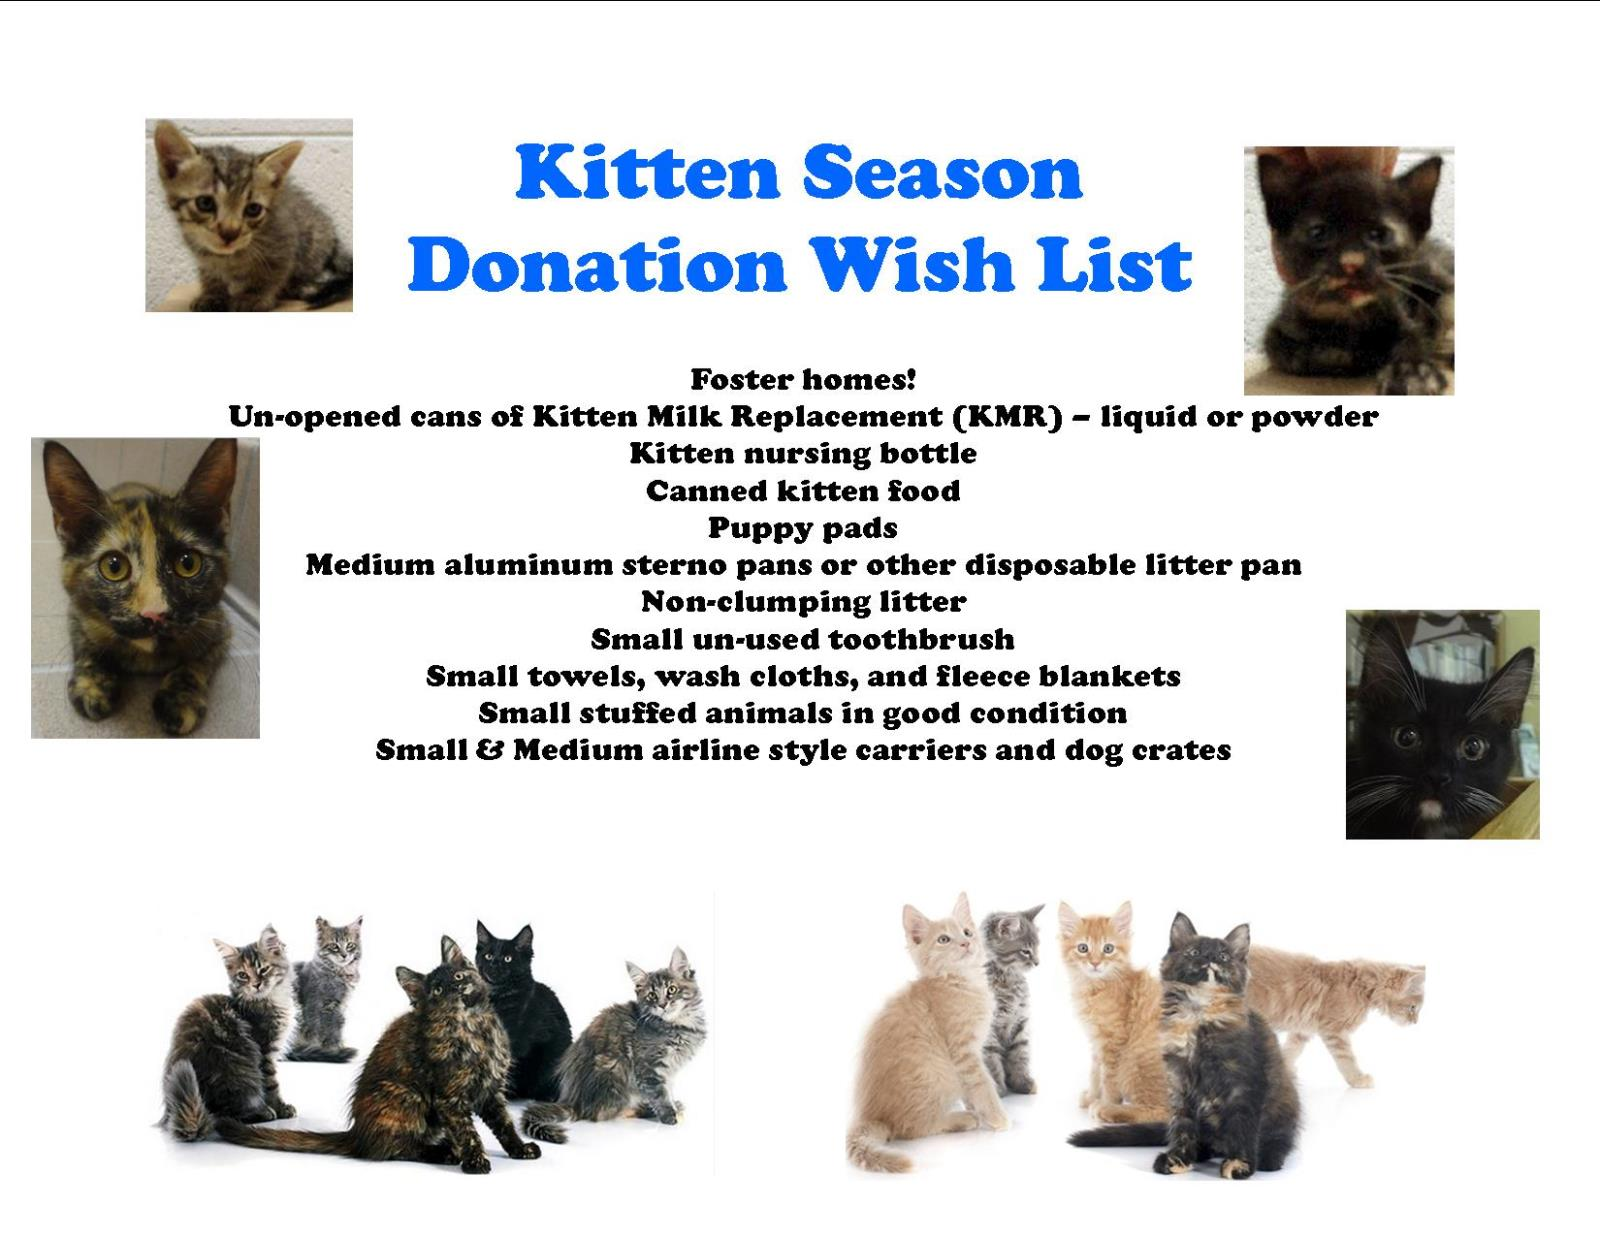 Kitten Season Donation Wish List